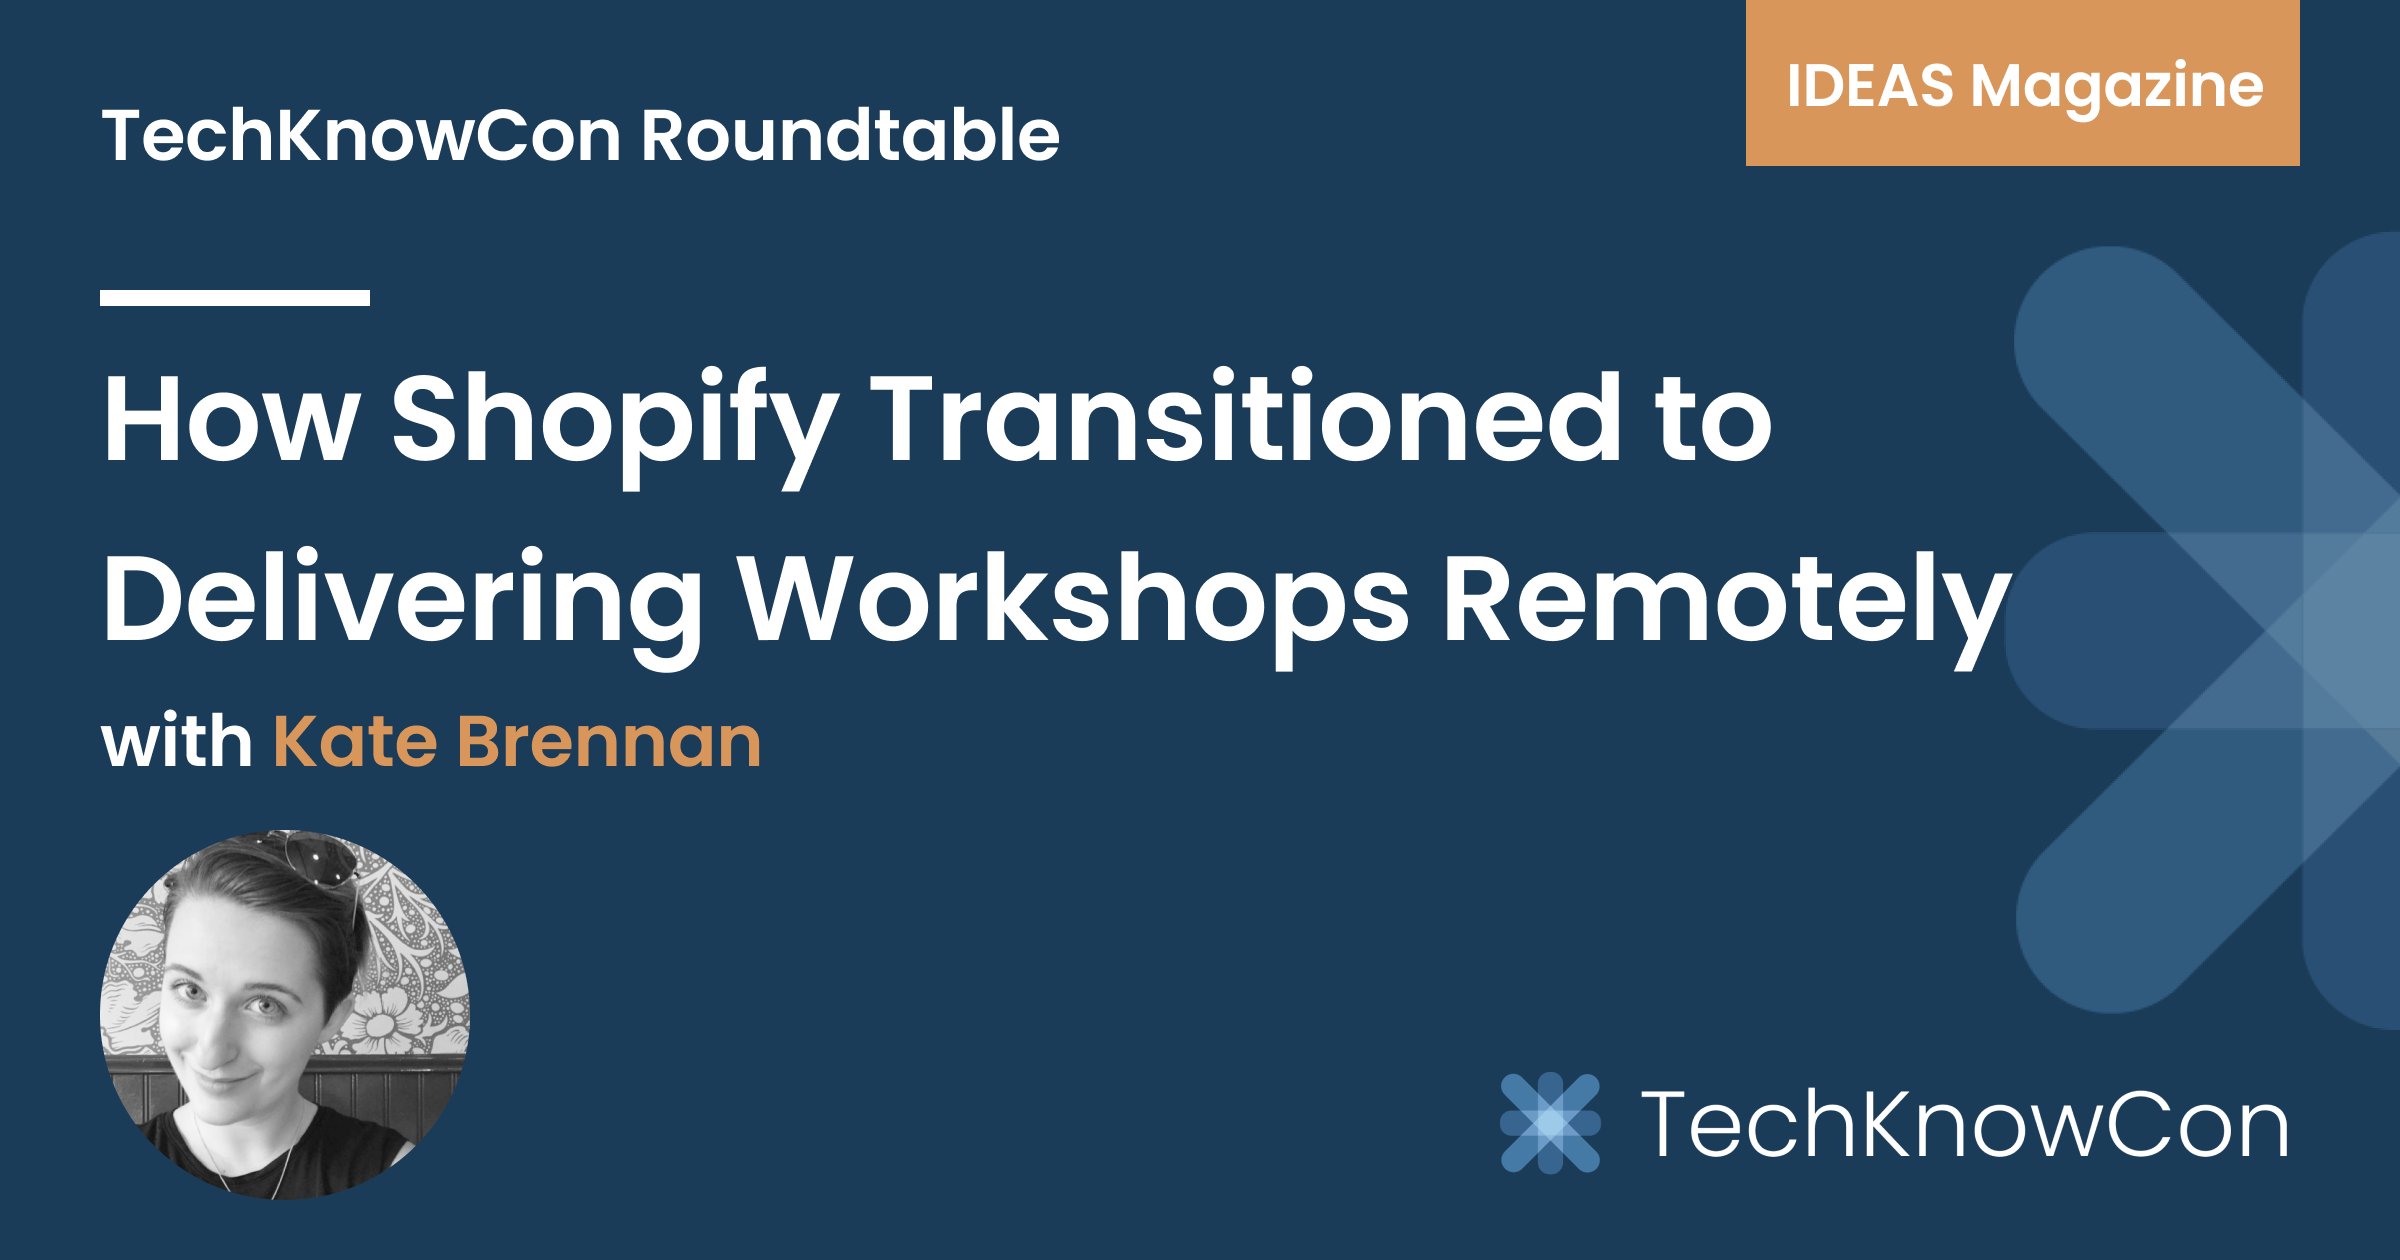 How Shopify Transitioned to Delivering Workshops Remotely